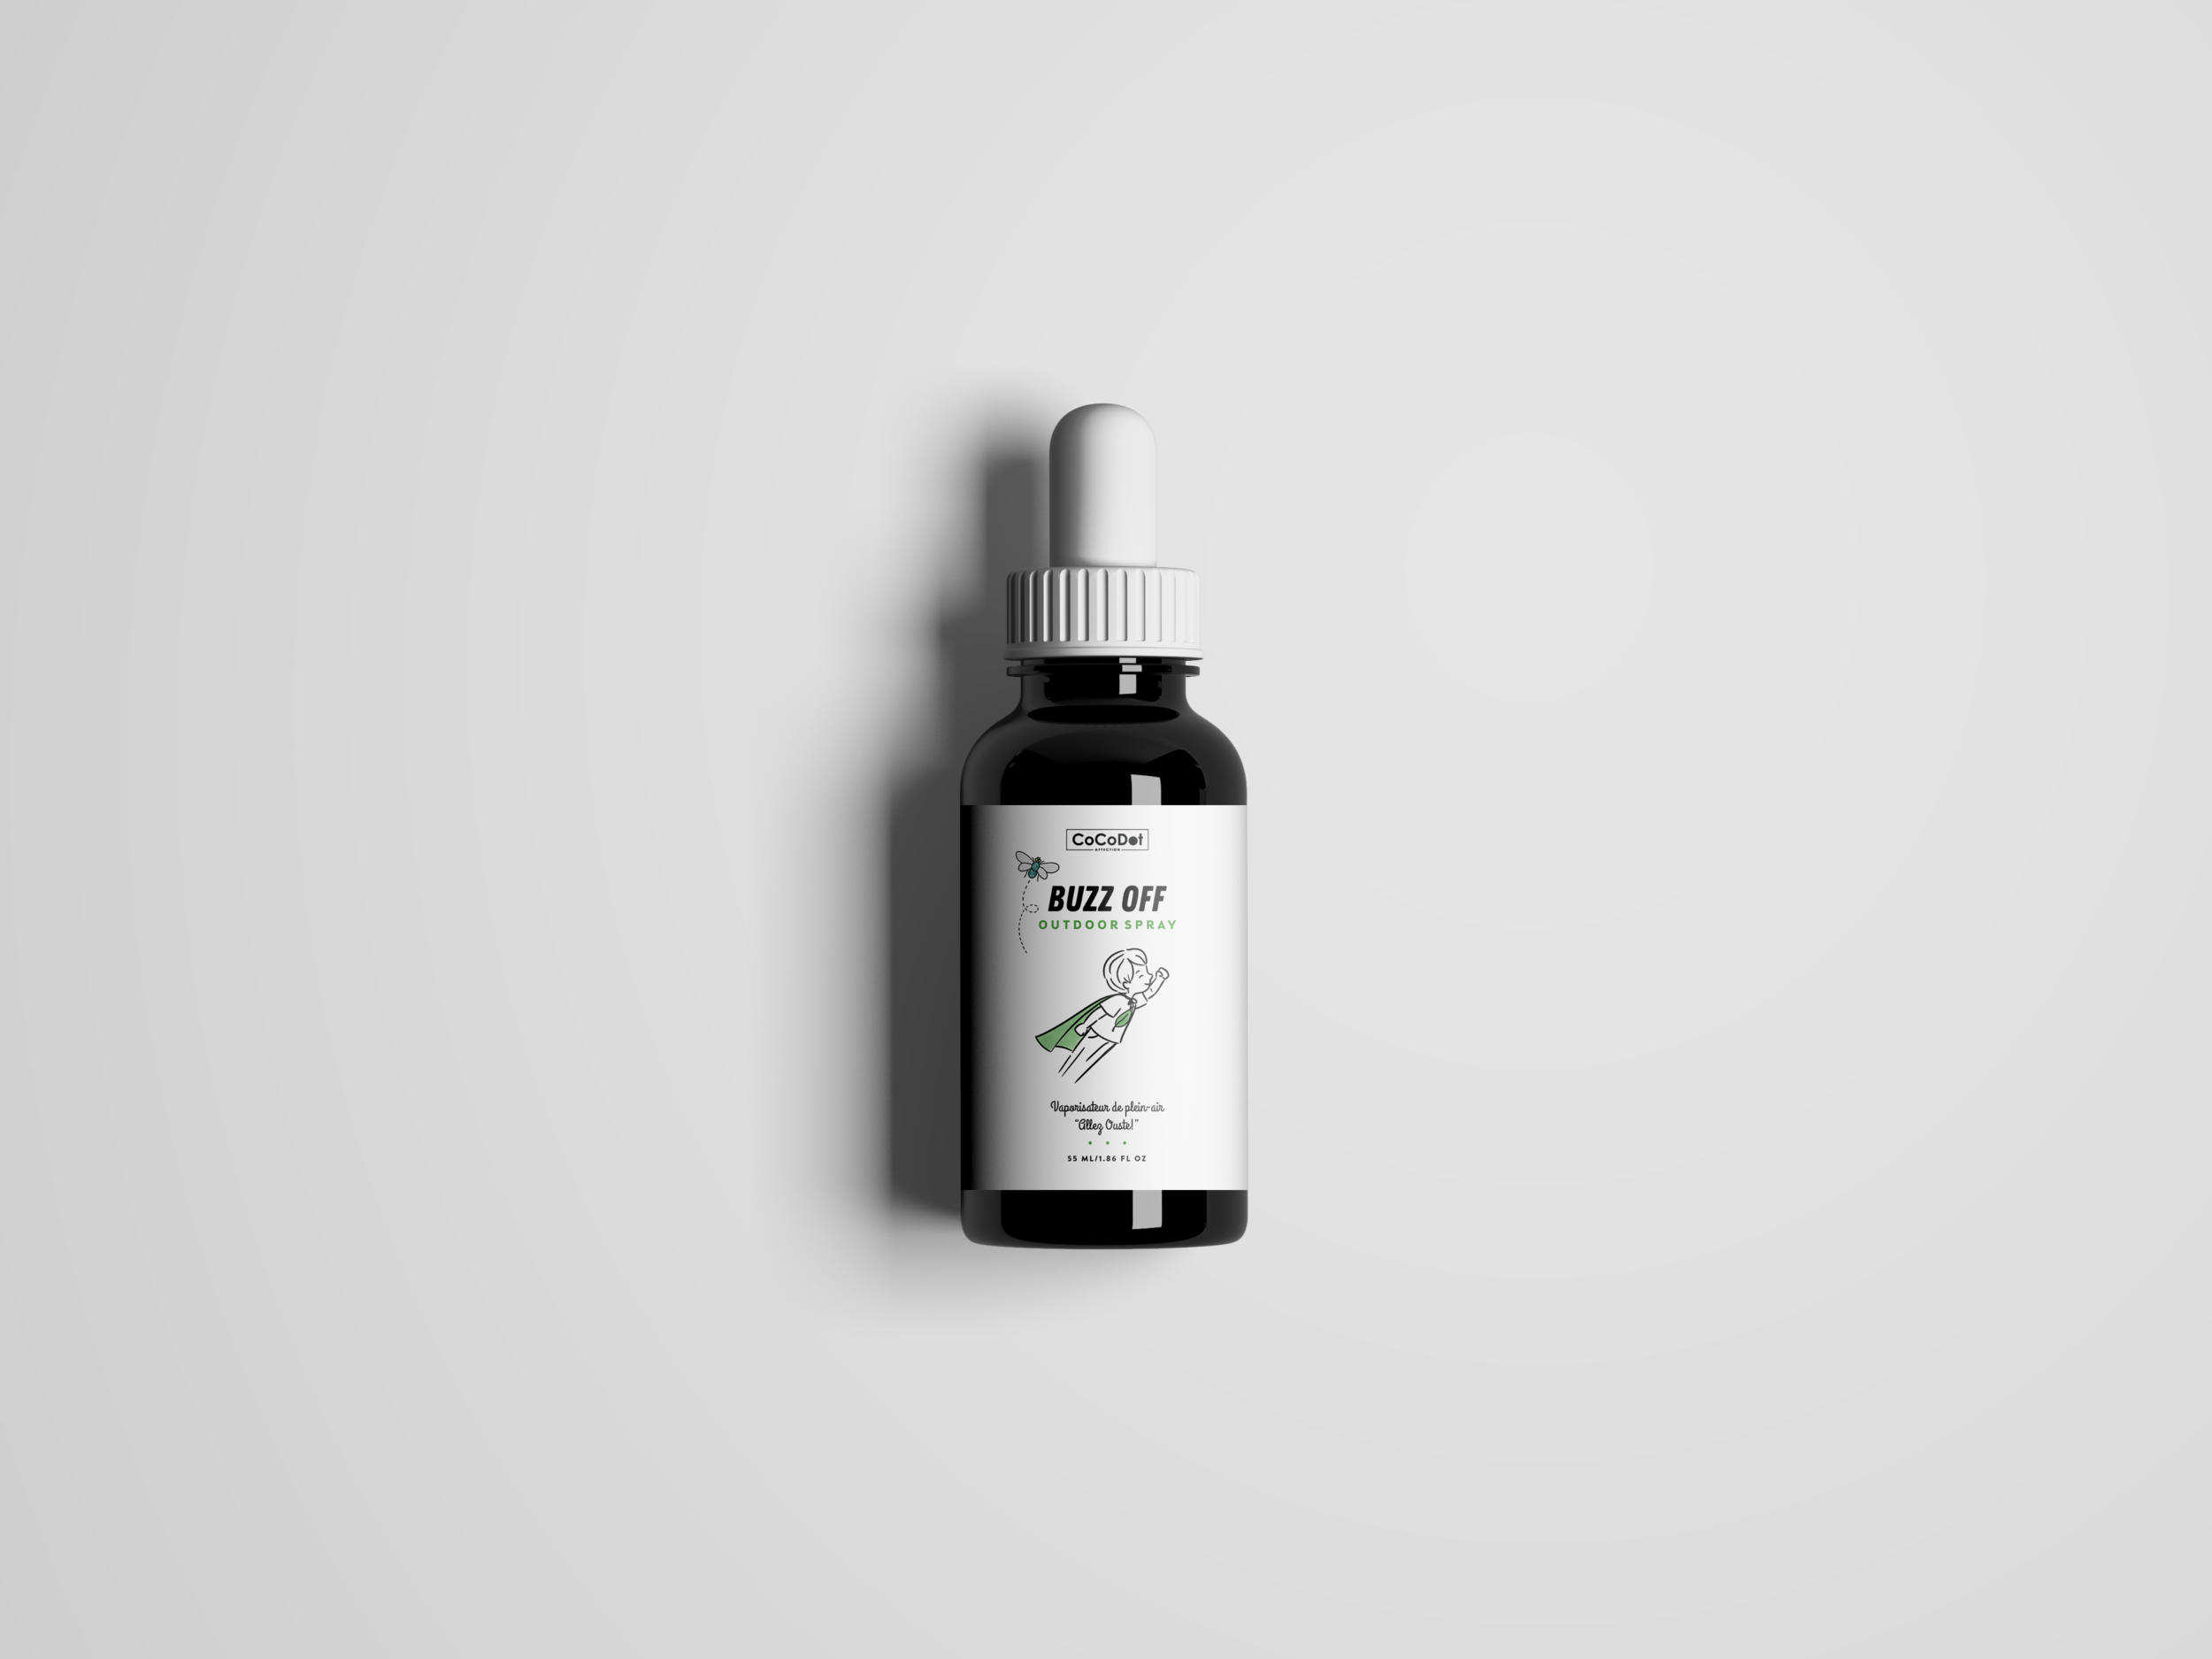 Buzz Off Outdoor Spray Mockup.png